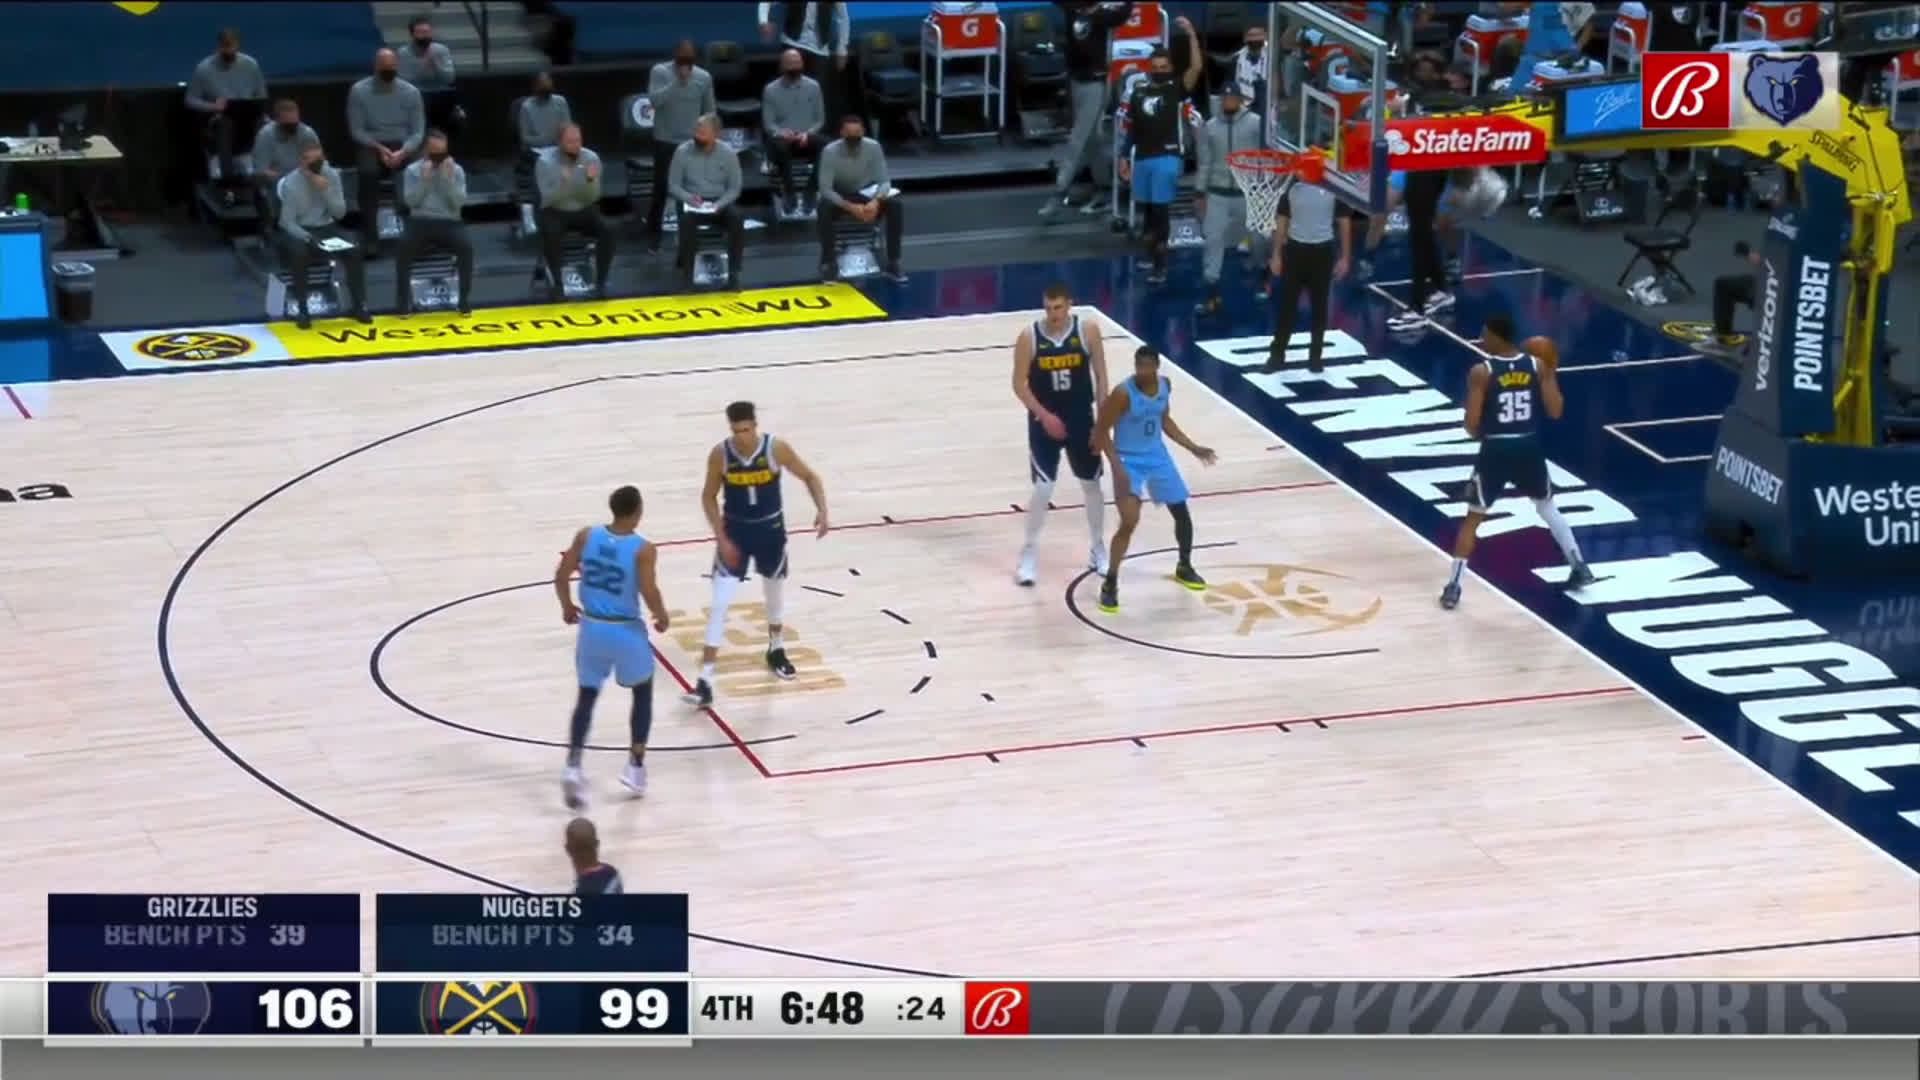 [Highlight] De'Anthony Melton drives through the lane and yams it in near Porter Jr